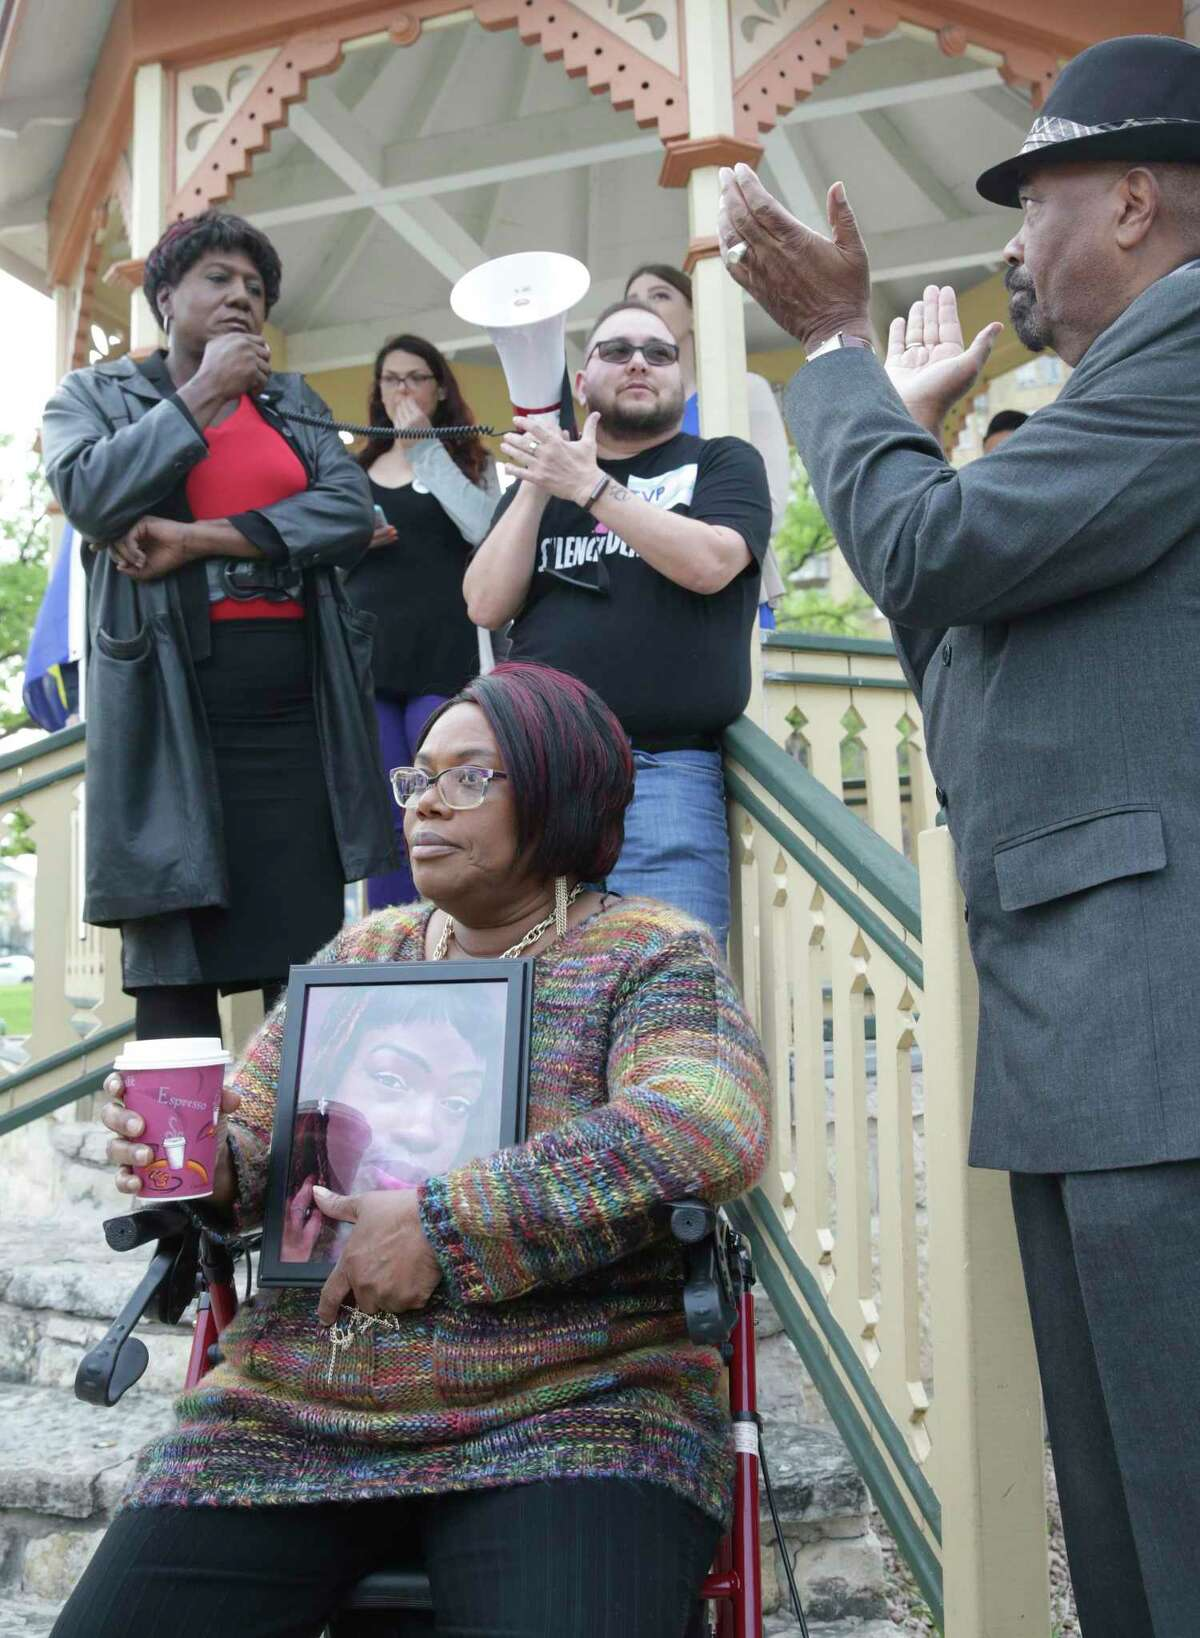 Speaker Monica Roberts is applauded by Rev. Dr. William H. Knight with JoAnn McFadden listening as LGBTQ community members take part in a rally in Crockett Park to demonstrate their solidarity and support for justice for Kenne McFadden on March 13, 2018.